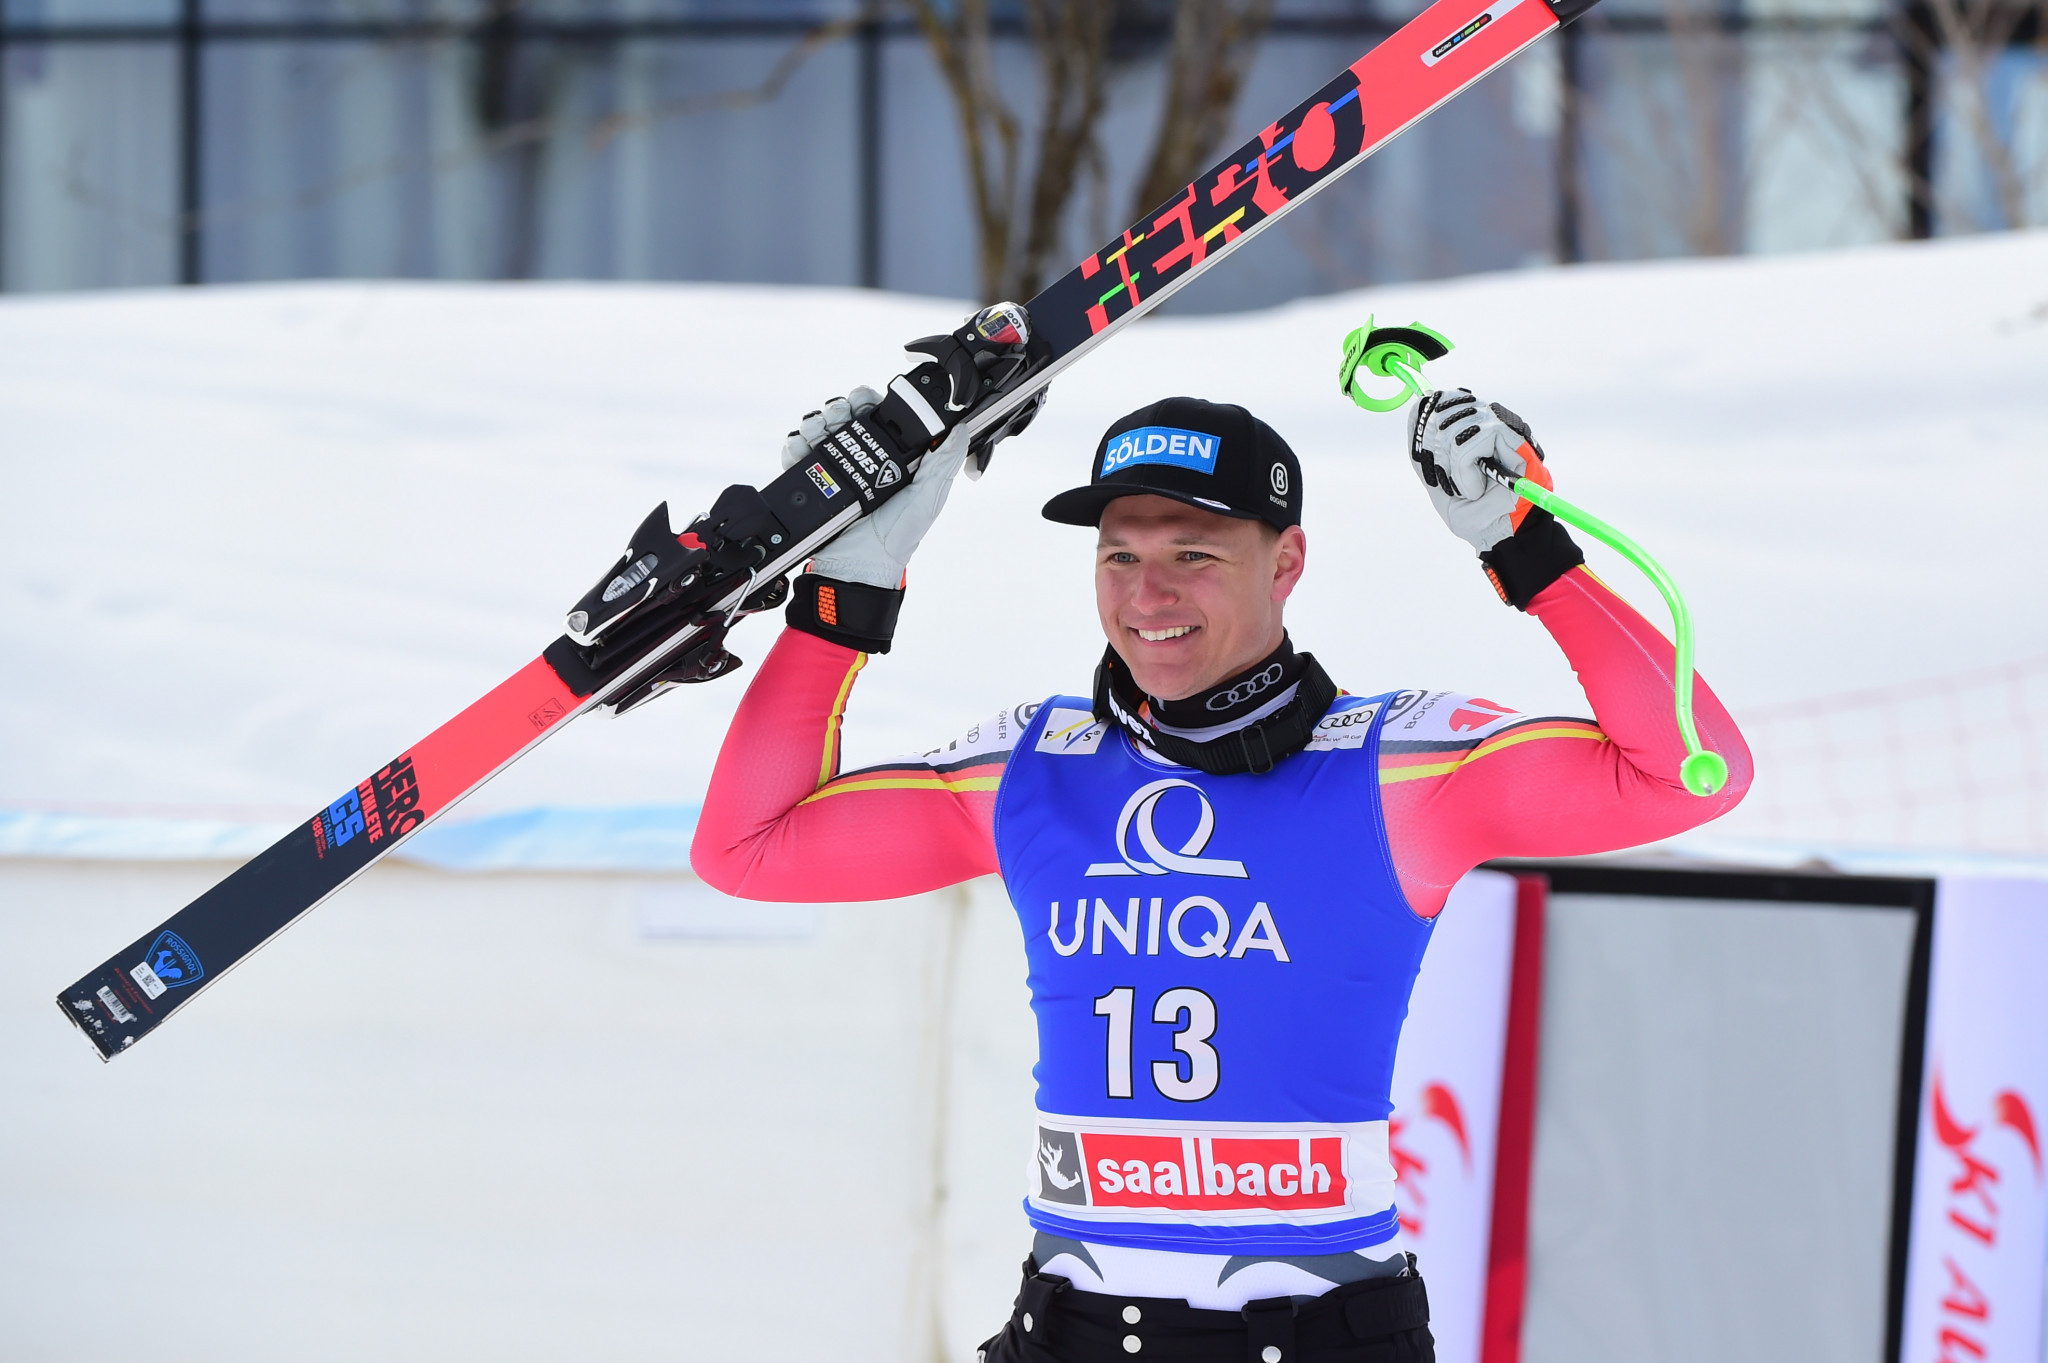 Dressen wins second downhill event in a row on FIS Alpine Ski World Cup tour